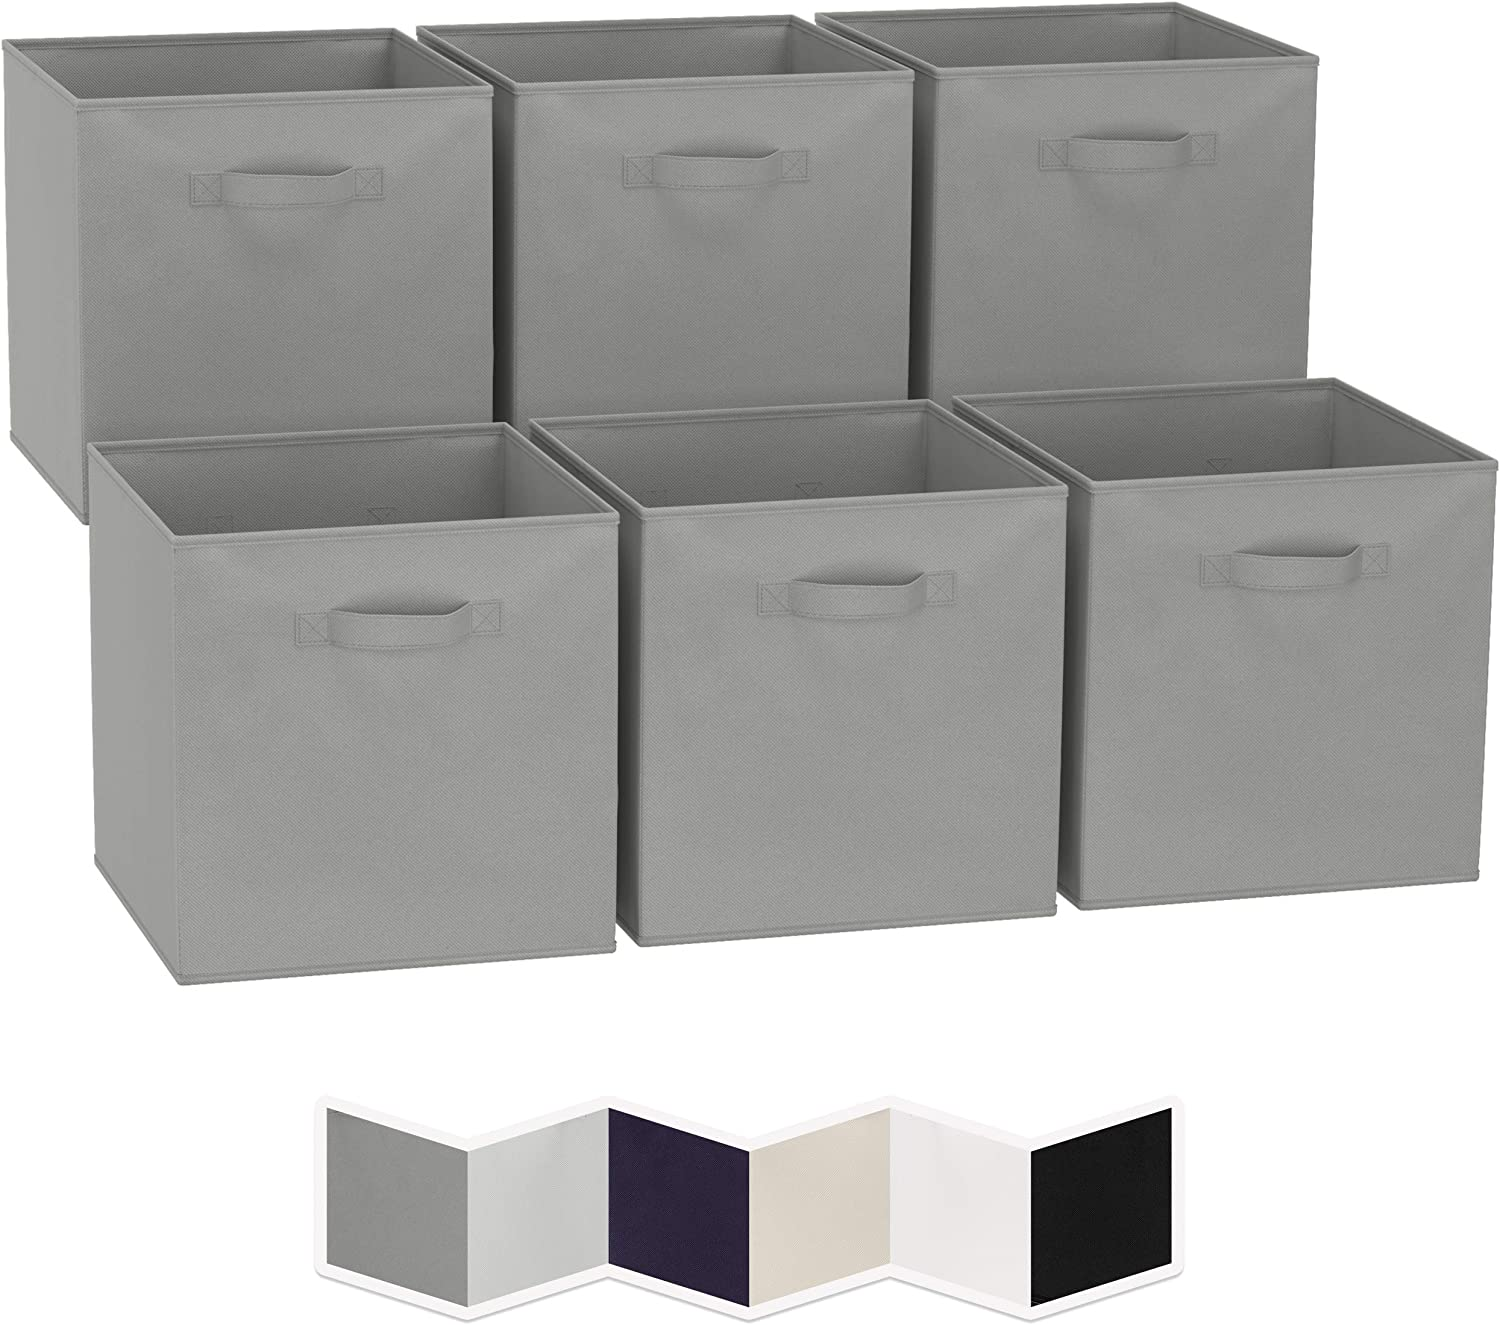 13x13 Large Storage Cubes (Set of 6). Fabric Storage Bins with Dual Handles   Cube Storage Bins for Home and Office   Foldable Cube Baskets For Shelf   Closet Organizers and Storage Box (Grey)